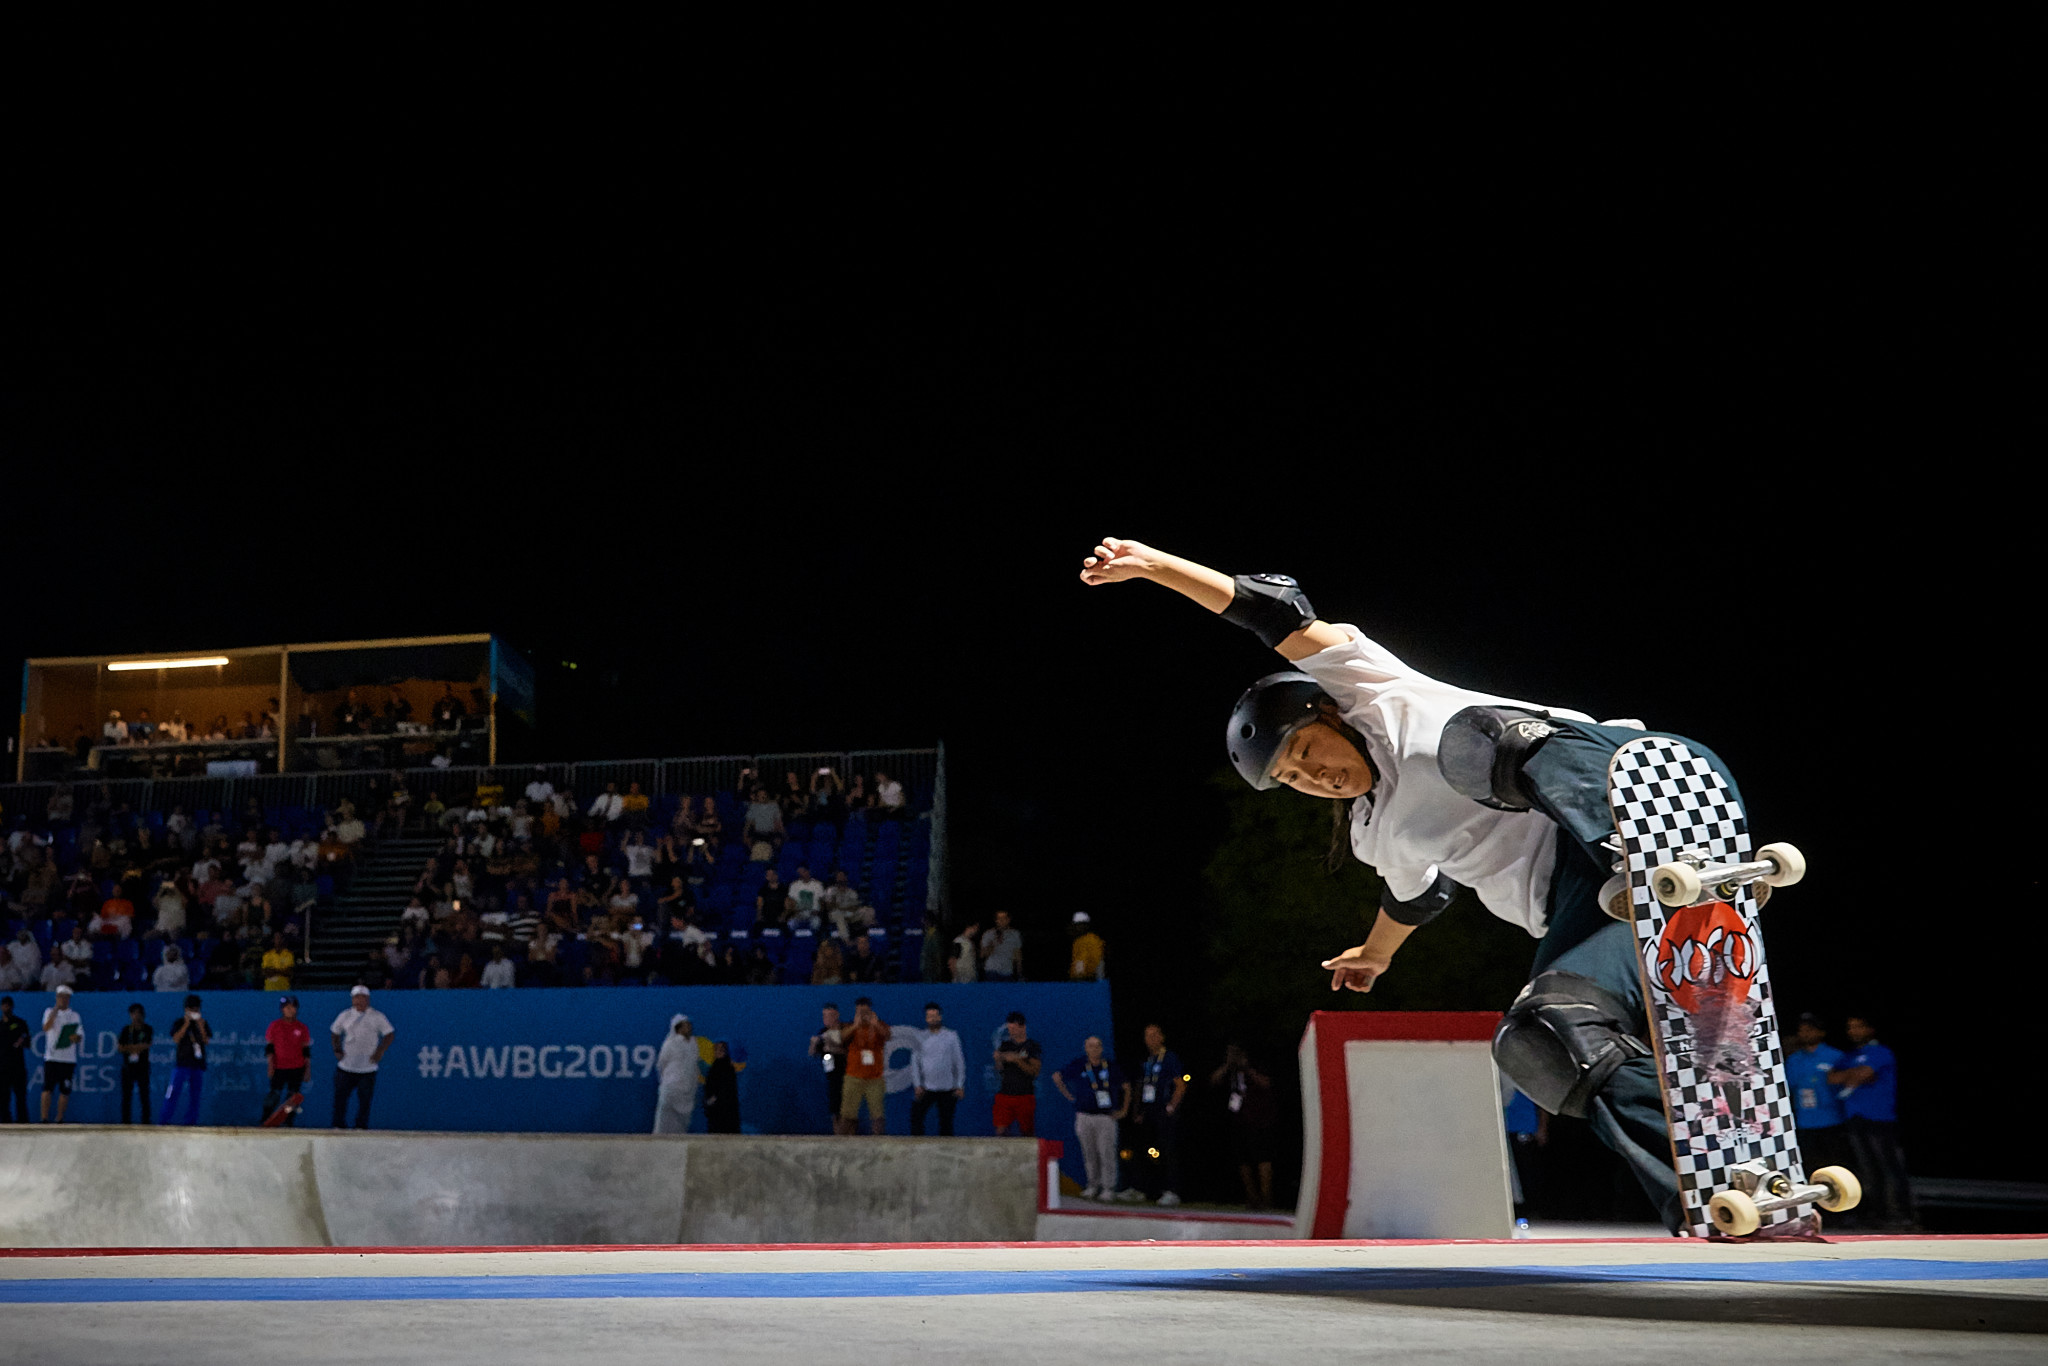 The competition at the ANOC World Beach Games gave us a glimpse of what to expect when skateboarding makes its Olympic debut at Tokyo 2020 ©ANOC World Beach Games